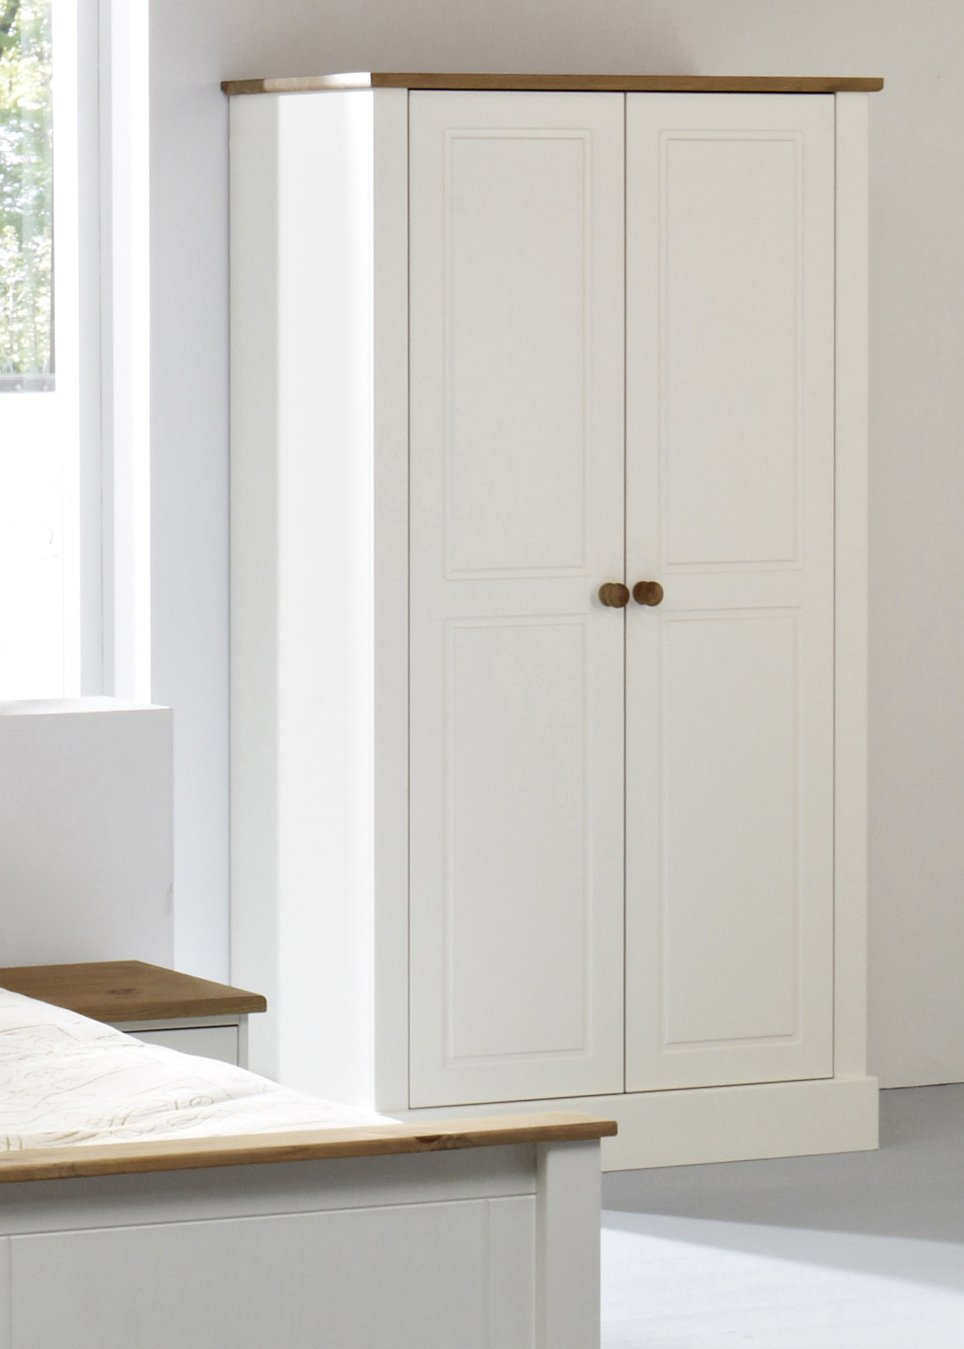 balmoral white wardrobe 2 door white double wardrobe amazoncouk kitchen home - White Wardrobe